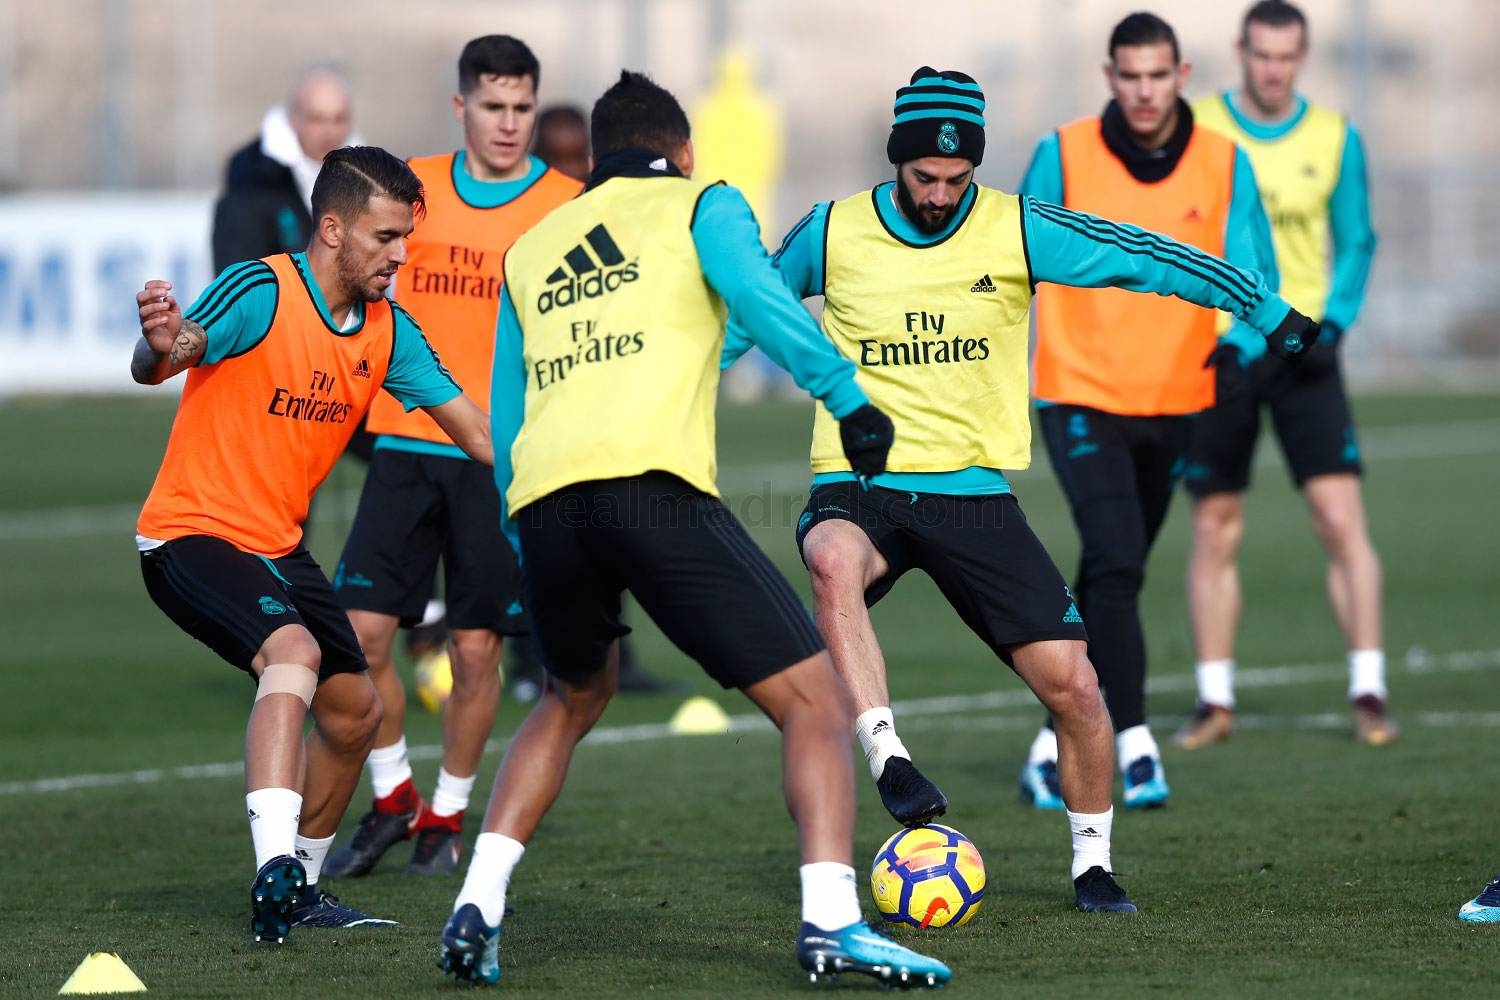 Real Madrid - Entrenamiento del Real Madrid - 20-12-2017